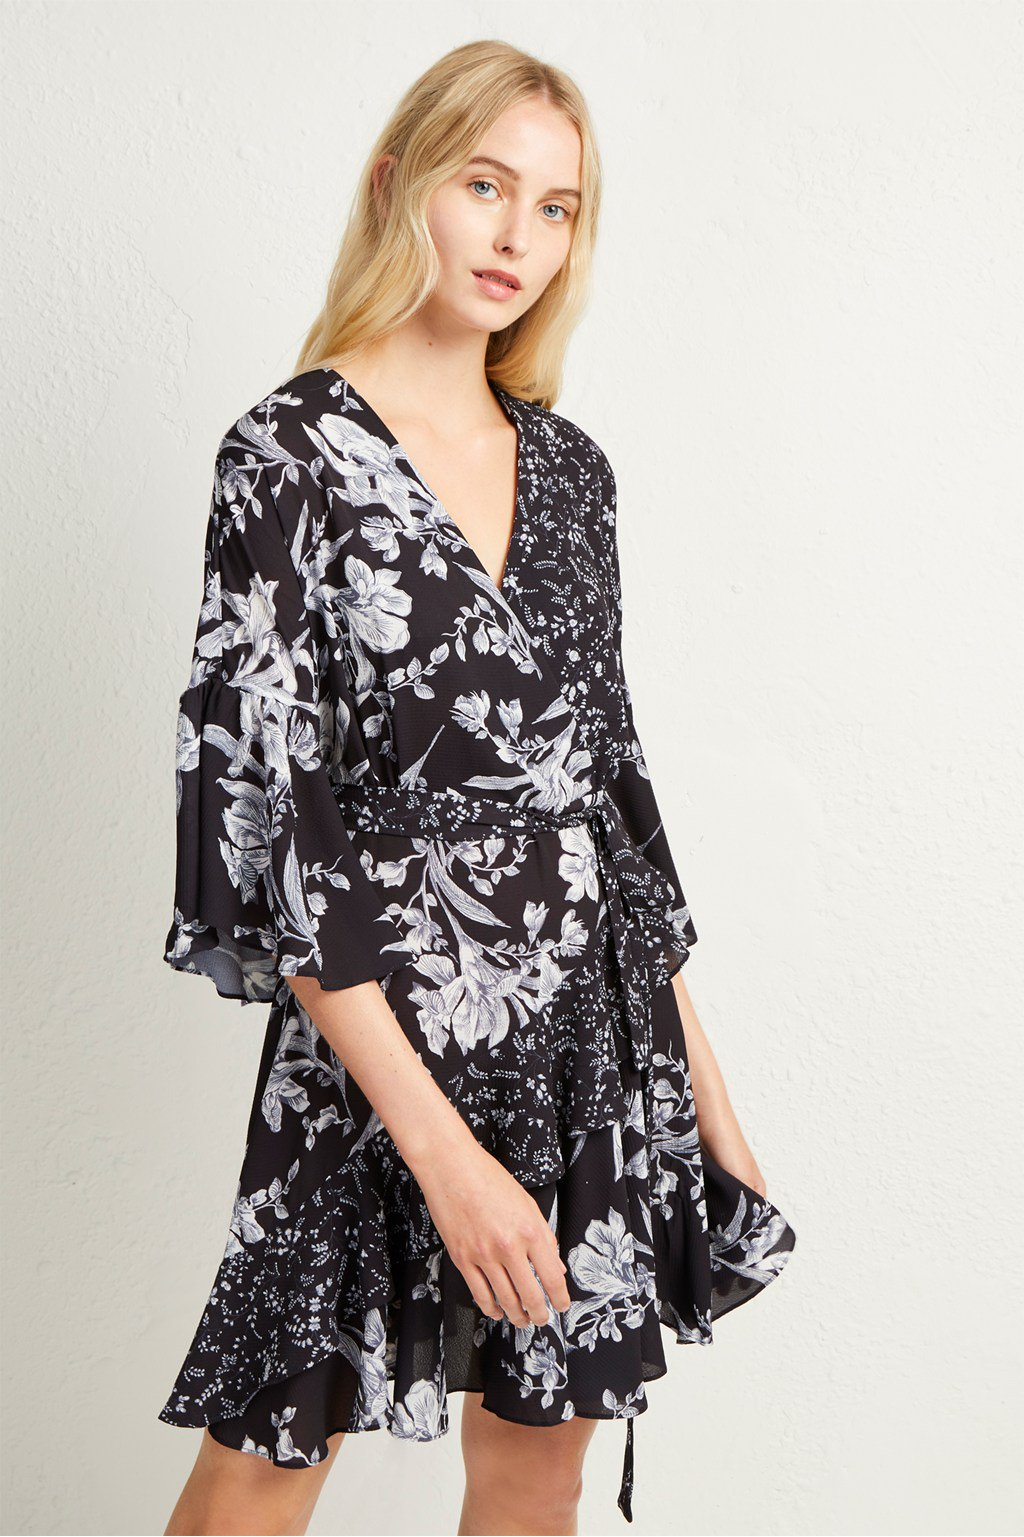 71kbi-womens-cr-utilitybluemulti-ellette-crepe-frill-wrap-dress-3.jpg